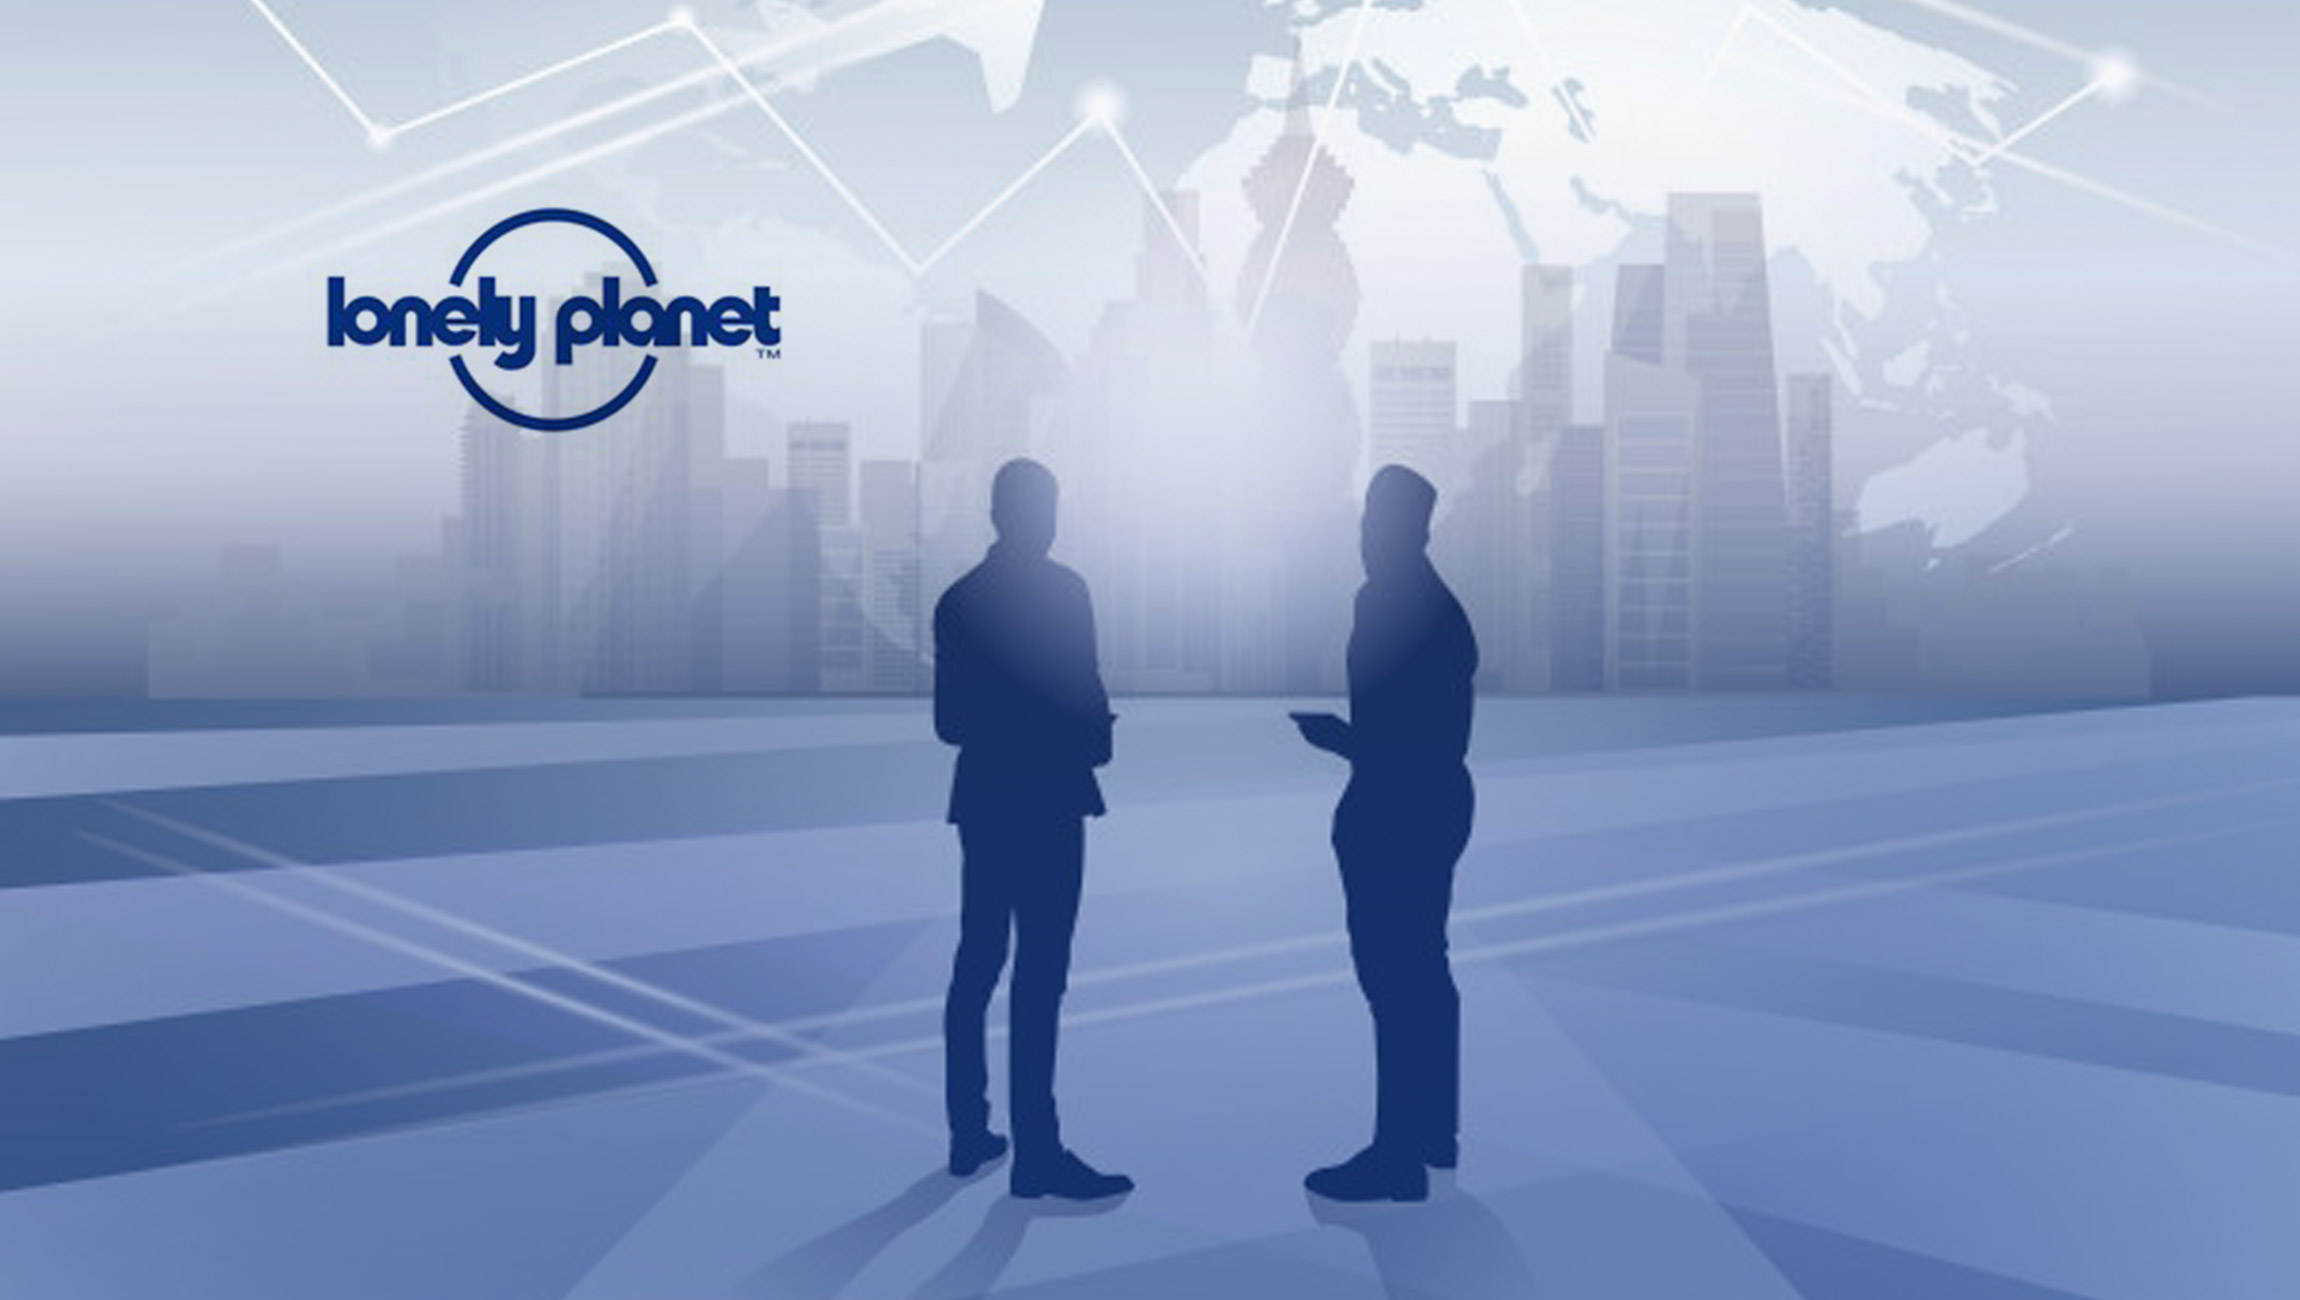 Lonely Planet Partners with Acquia to Develop the Most Consumer-Centric Platform in Travel